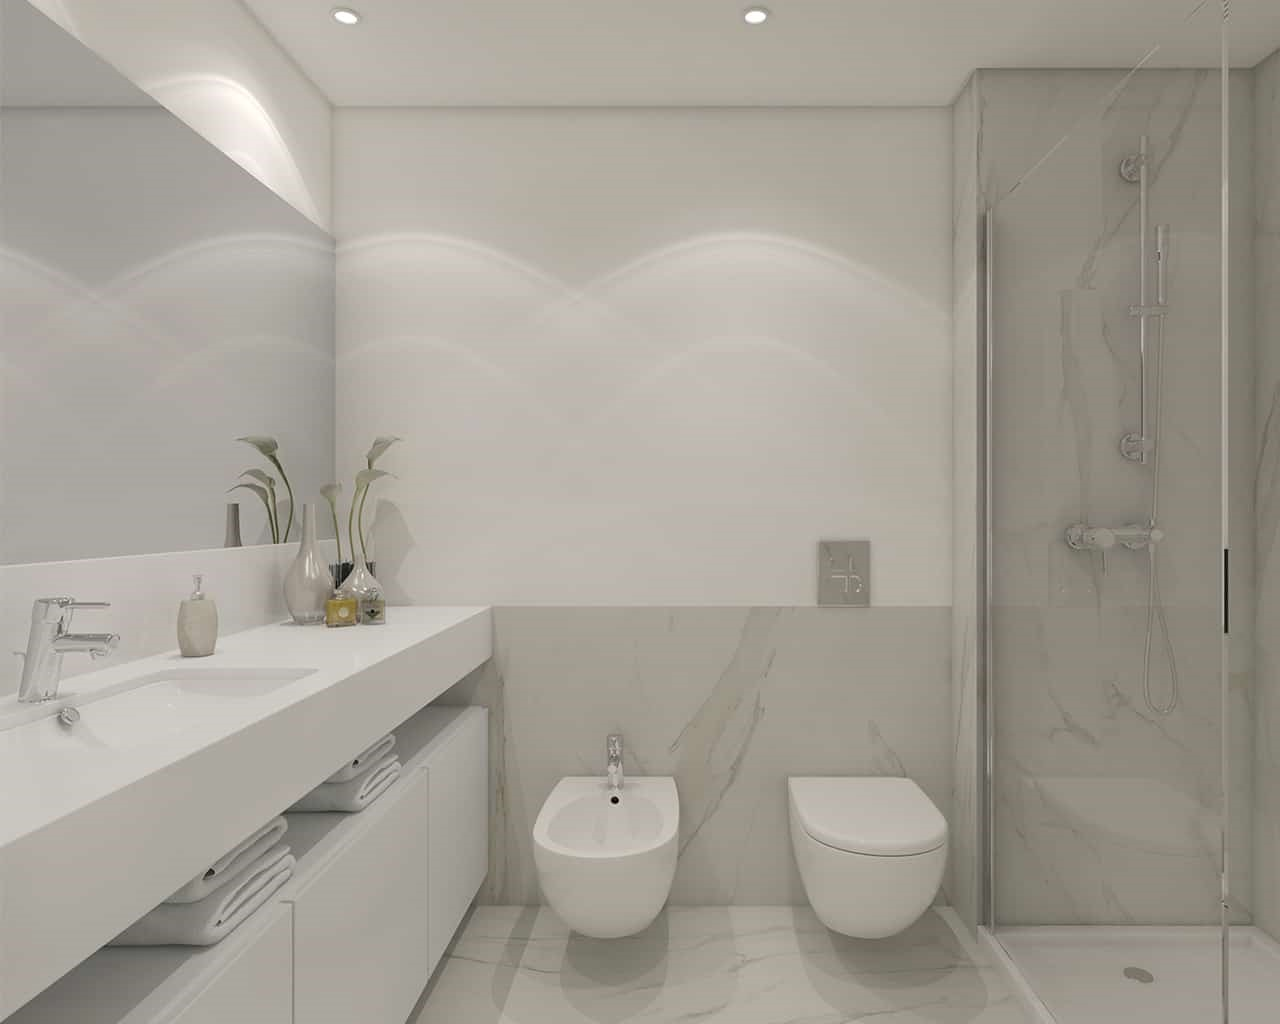 areeiro-prime-salle de bain-option urban calssic-douche